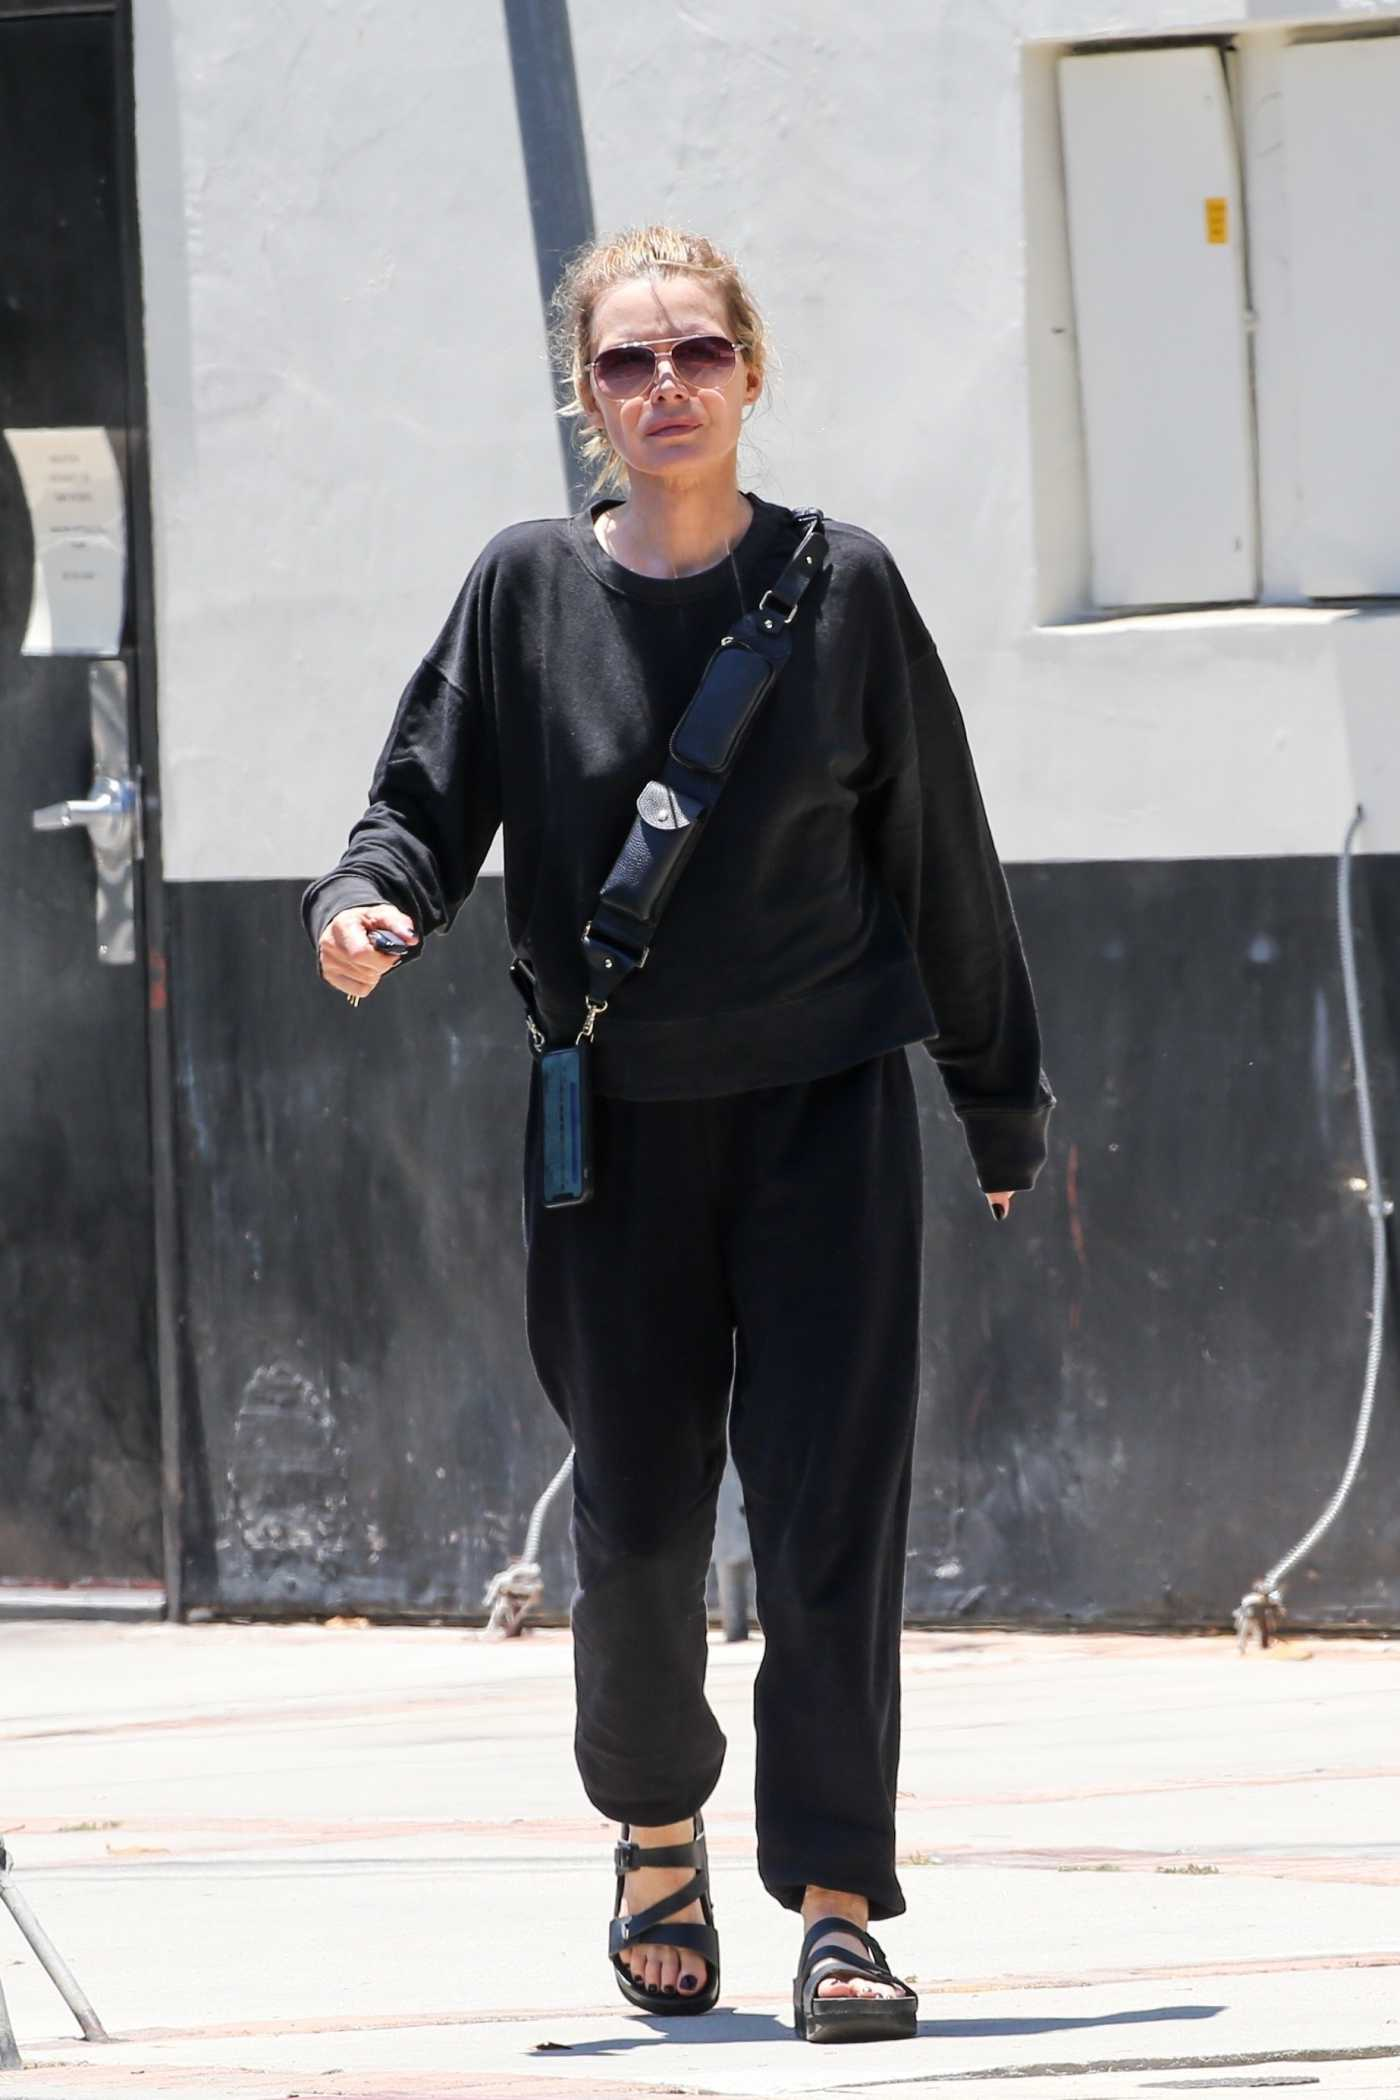 Michelle Pfeiffer in a Black Sweatsuit Was Seen Out in Brentwood 06/14/2021